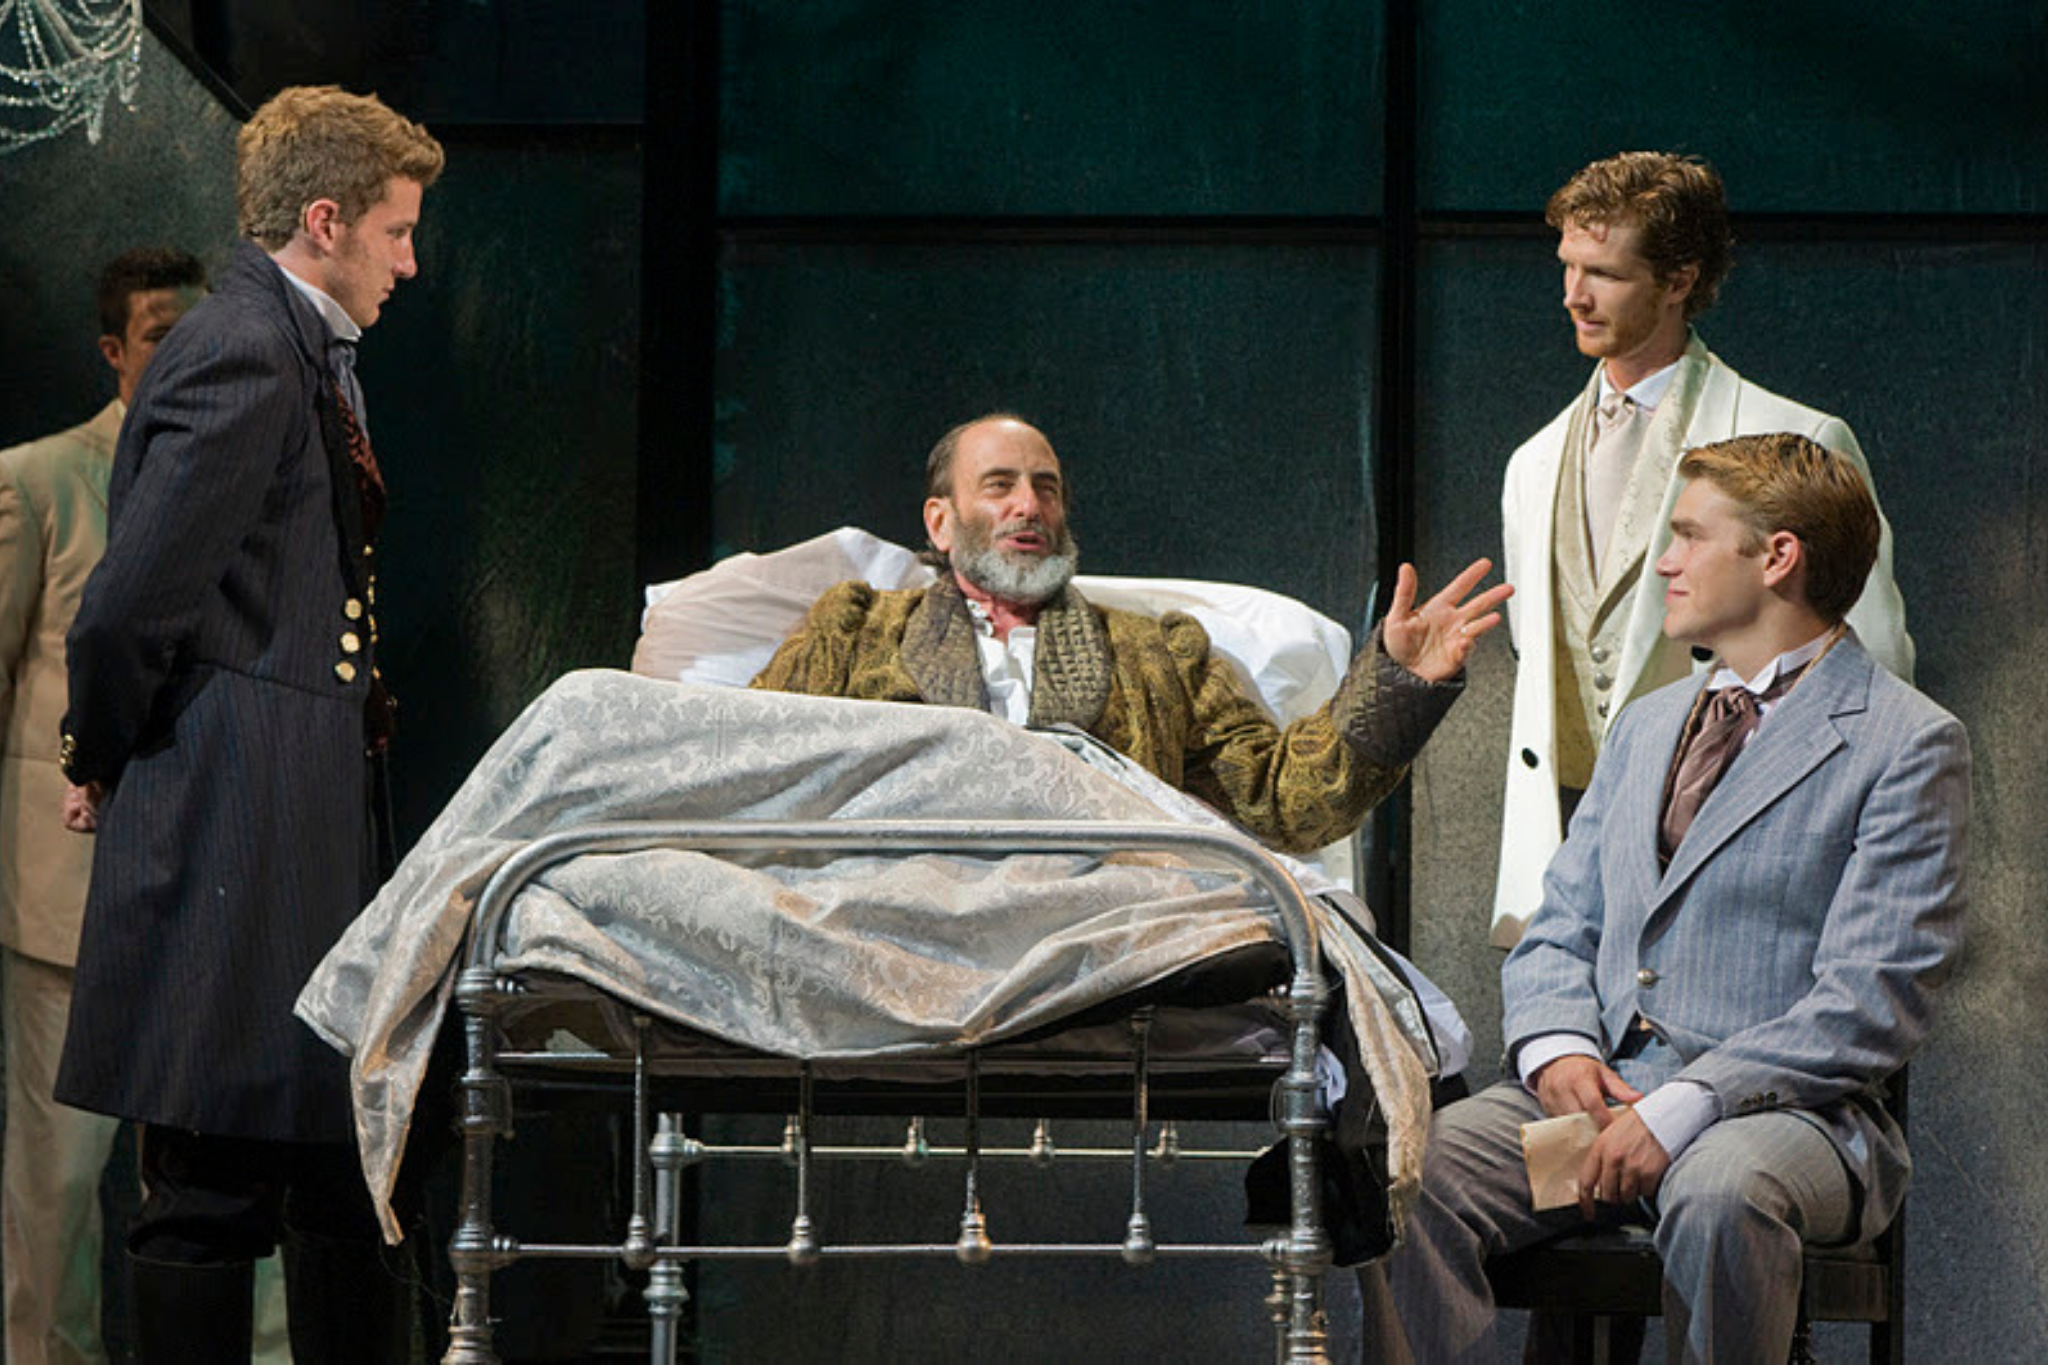 Nick Dillenberg (Bertram), Will LeBow (King of France), Joe Short (First Lord Dumaine), and Andrew Burnap (Second Lord Dumaine) in All's Well That Ends Well, Shakespeare on the Common 2011-Photo by Andrew Brilliant